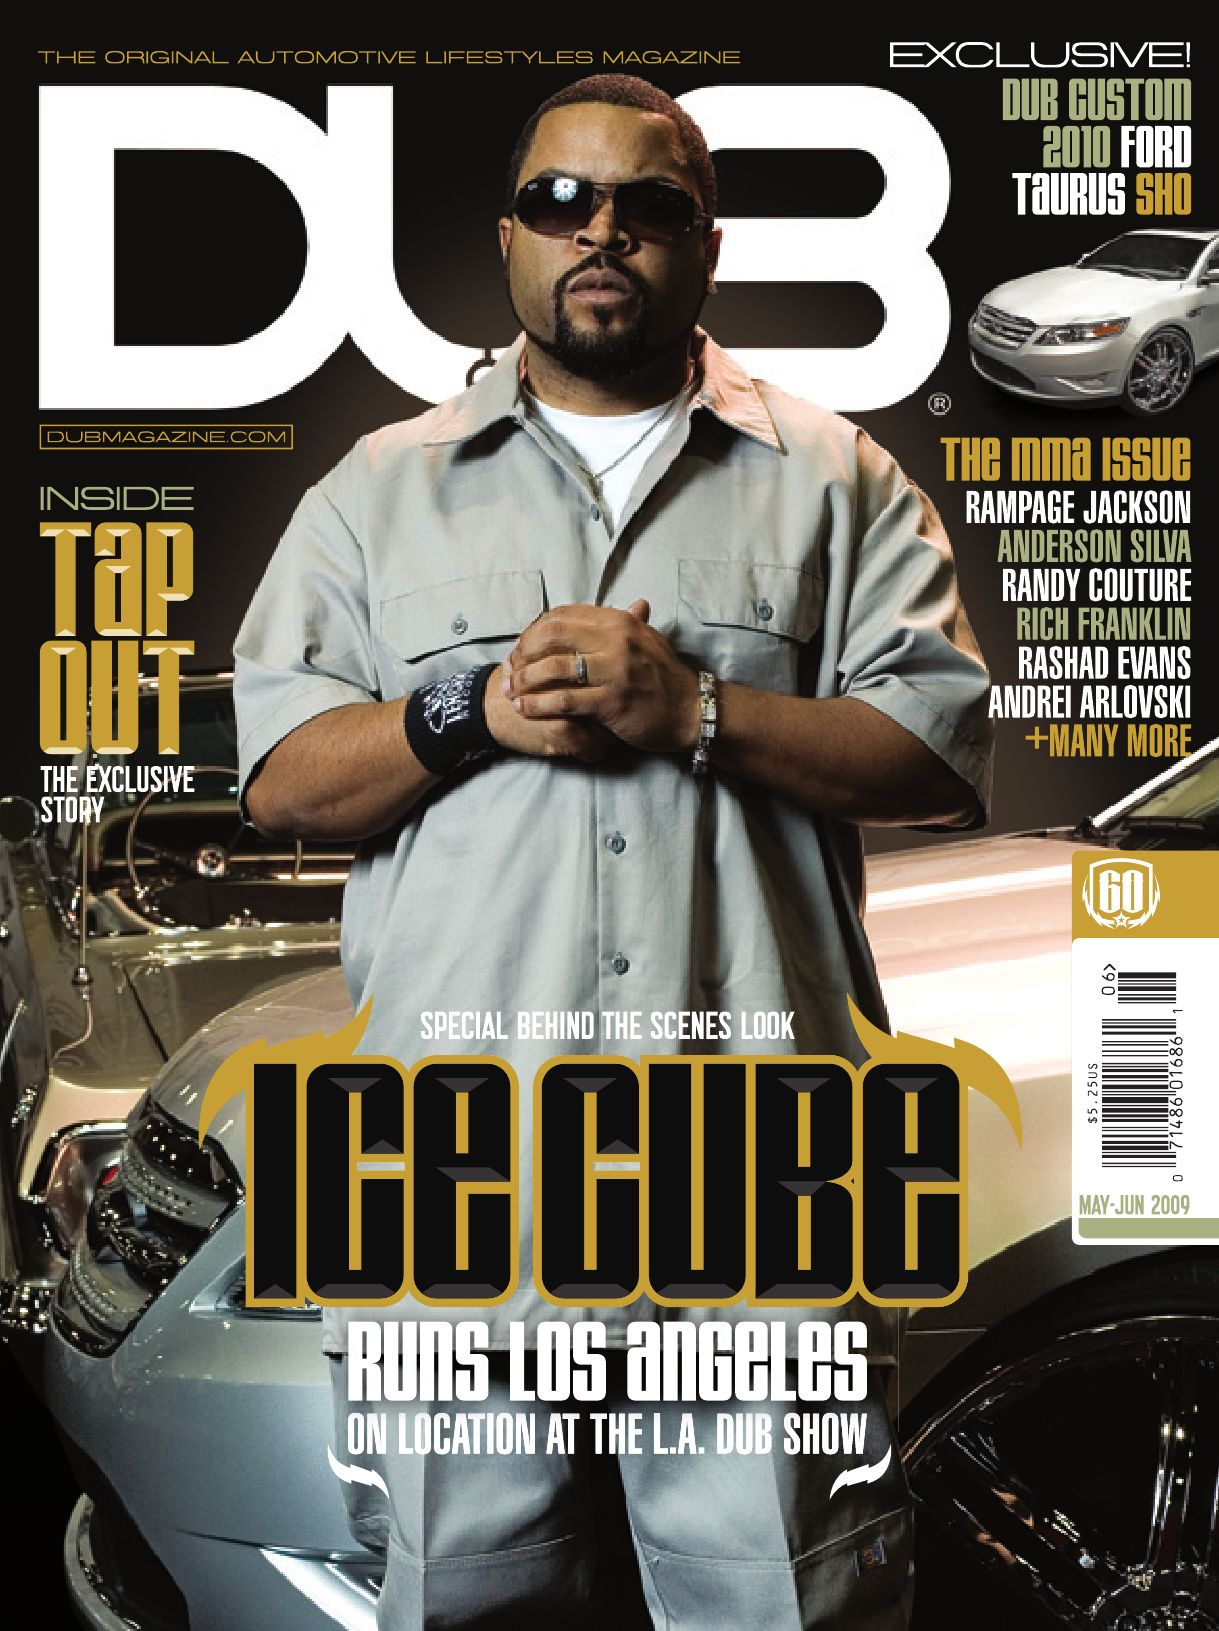 How To Read Tire Size >> DUB Magazine Issue 60 by DUB - Issuu